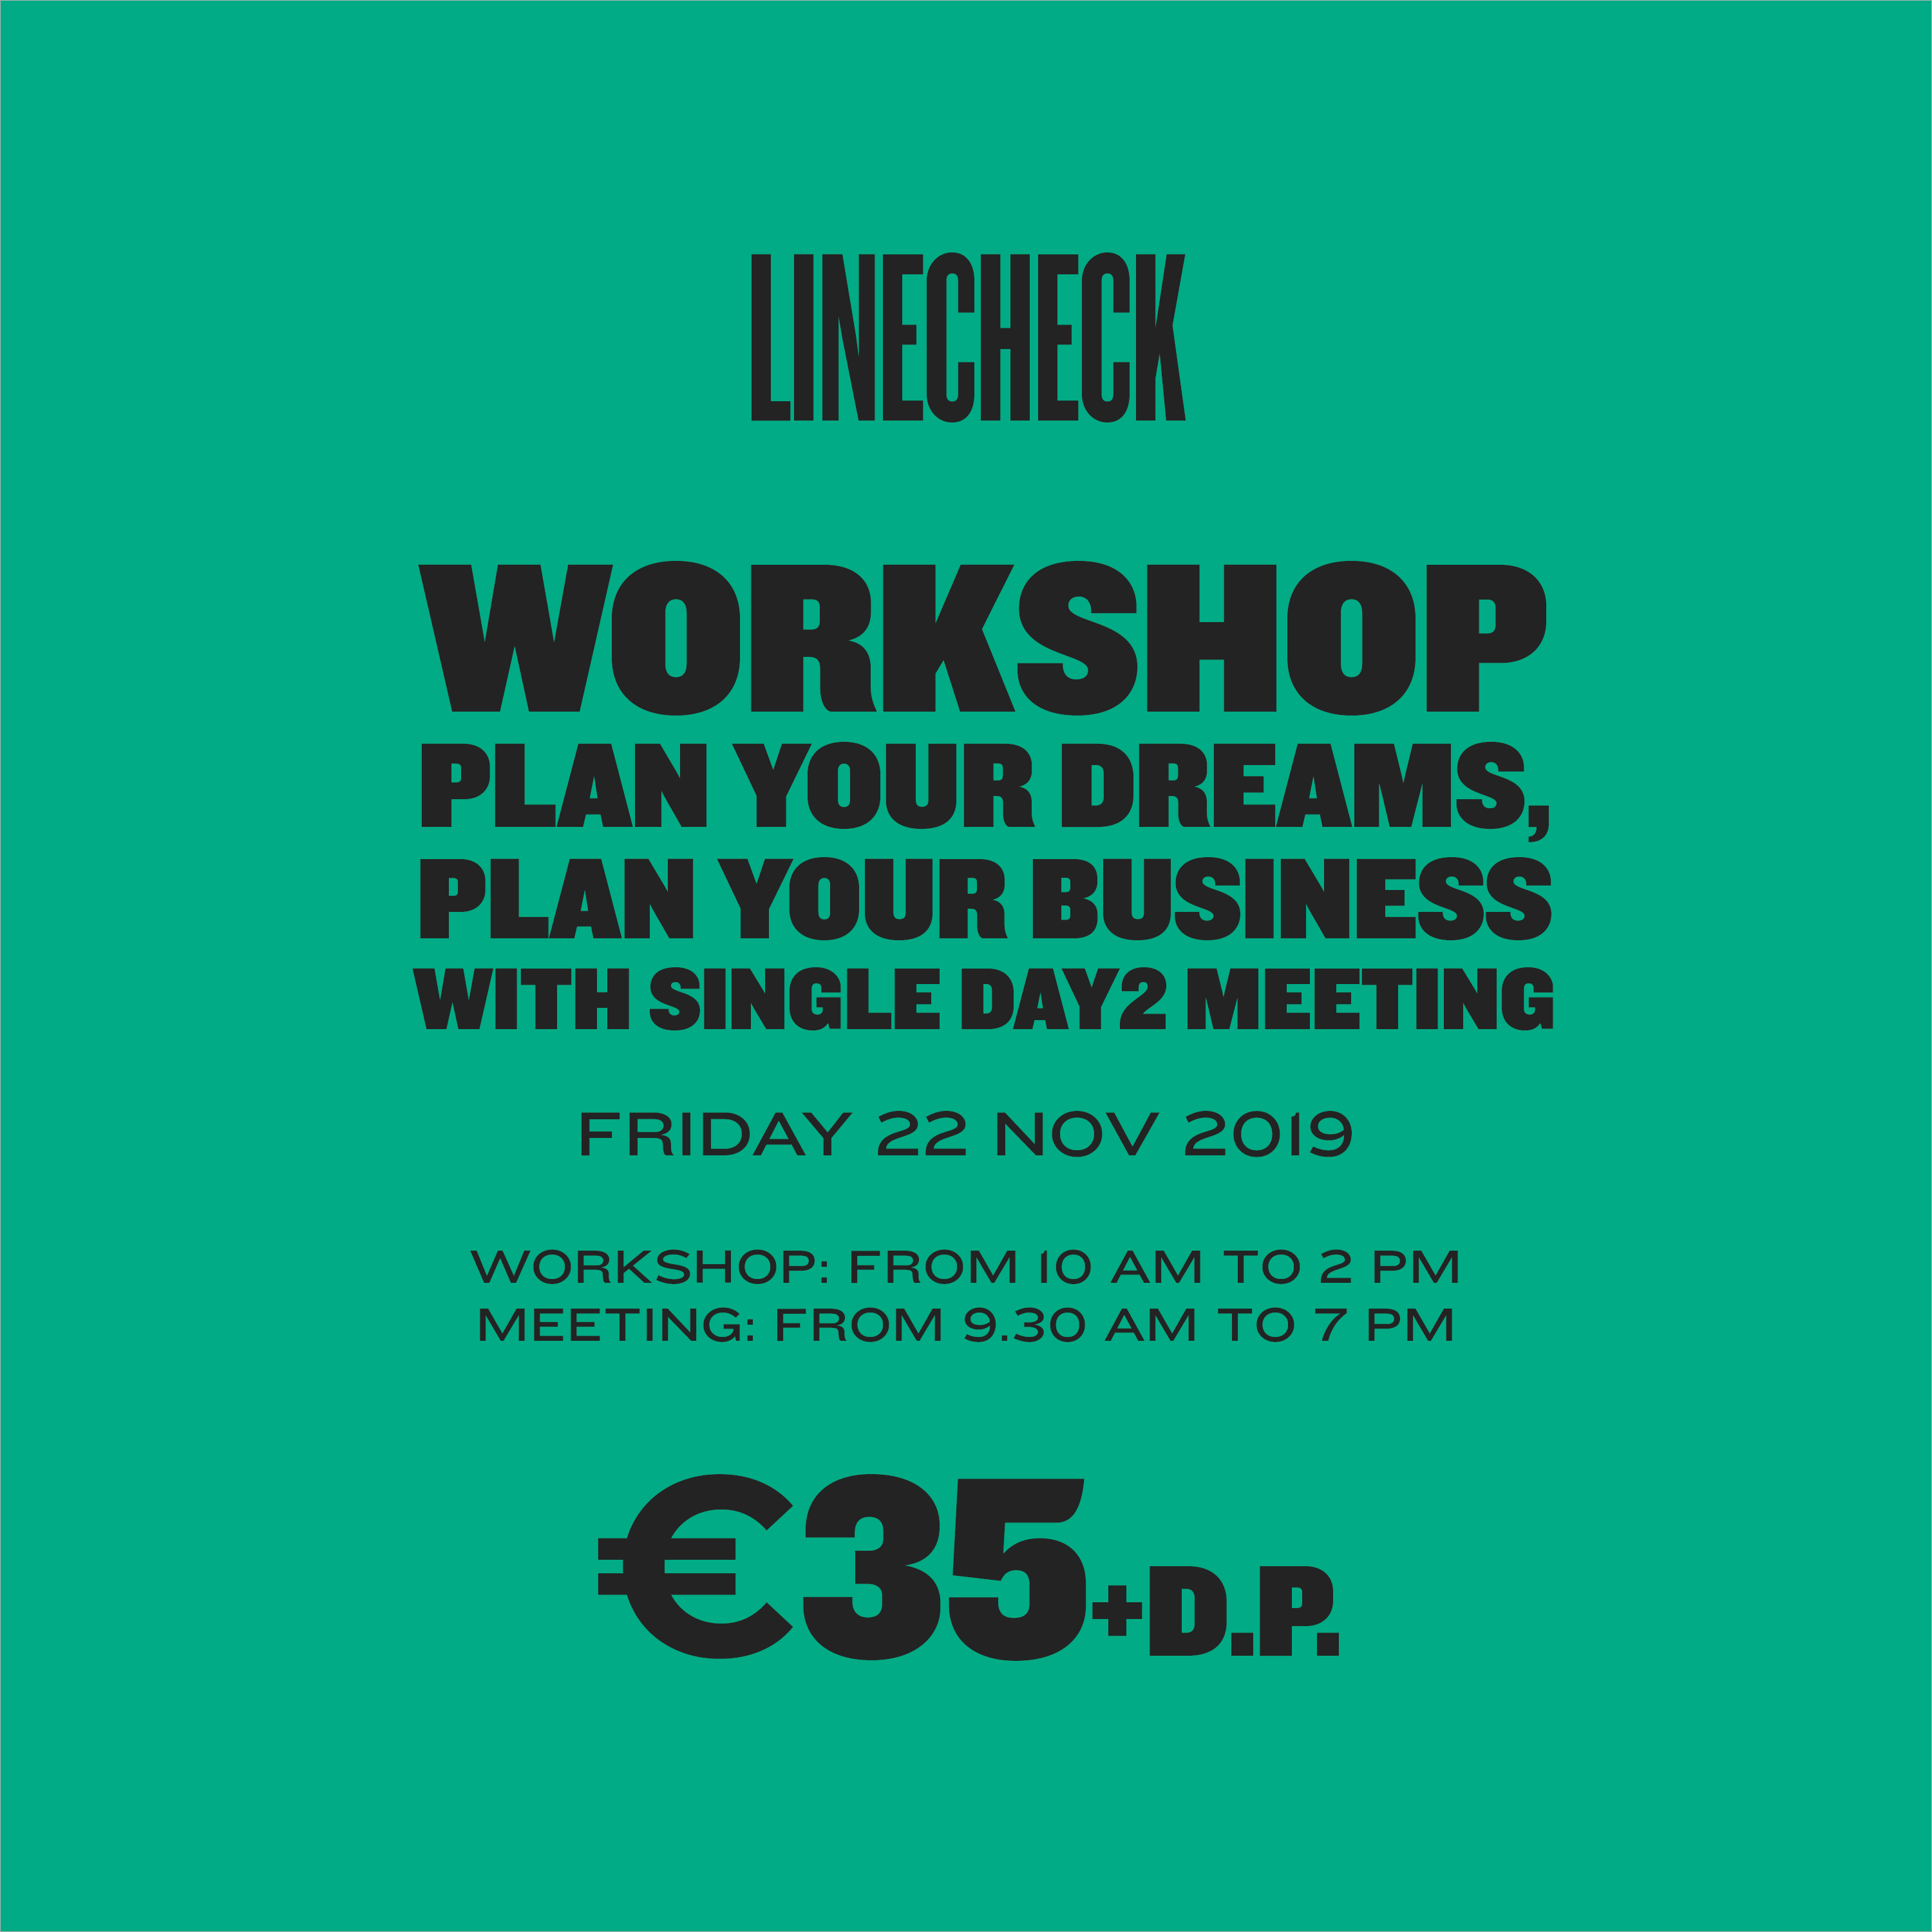 LINECHECK 2019  - WORKSHOP PLAN YOUR DREAMS, PLAN YOUR BUSINESS + SINGLE DAY MEETING 2